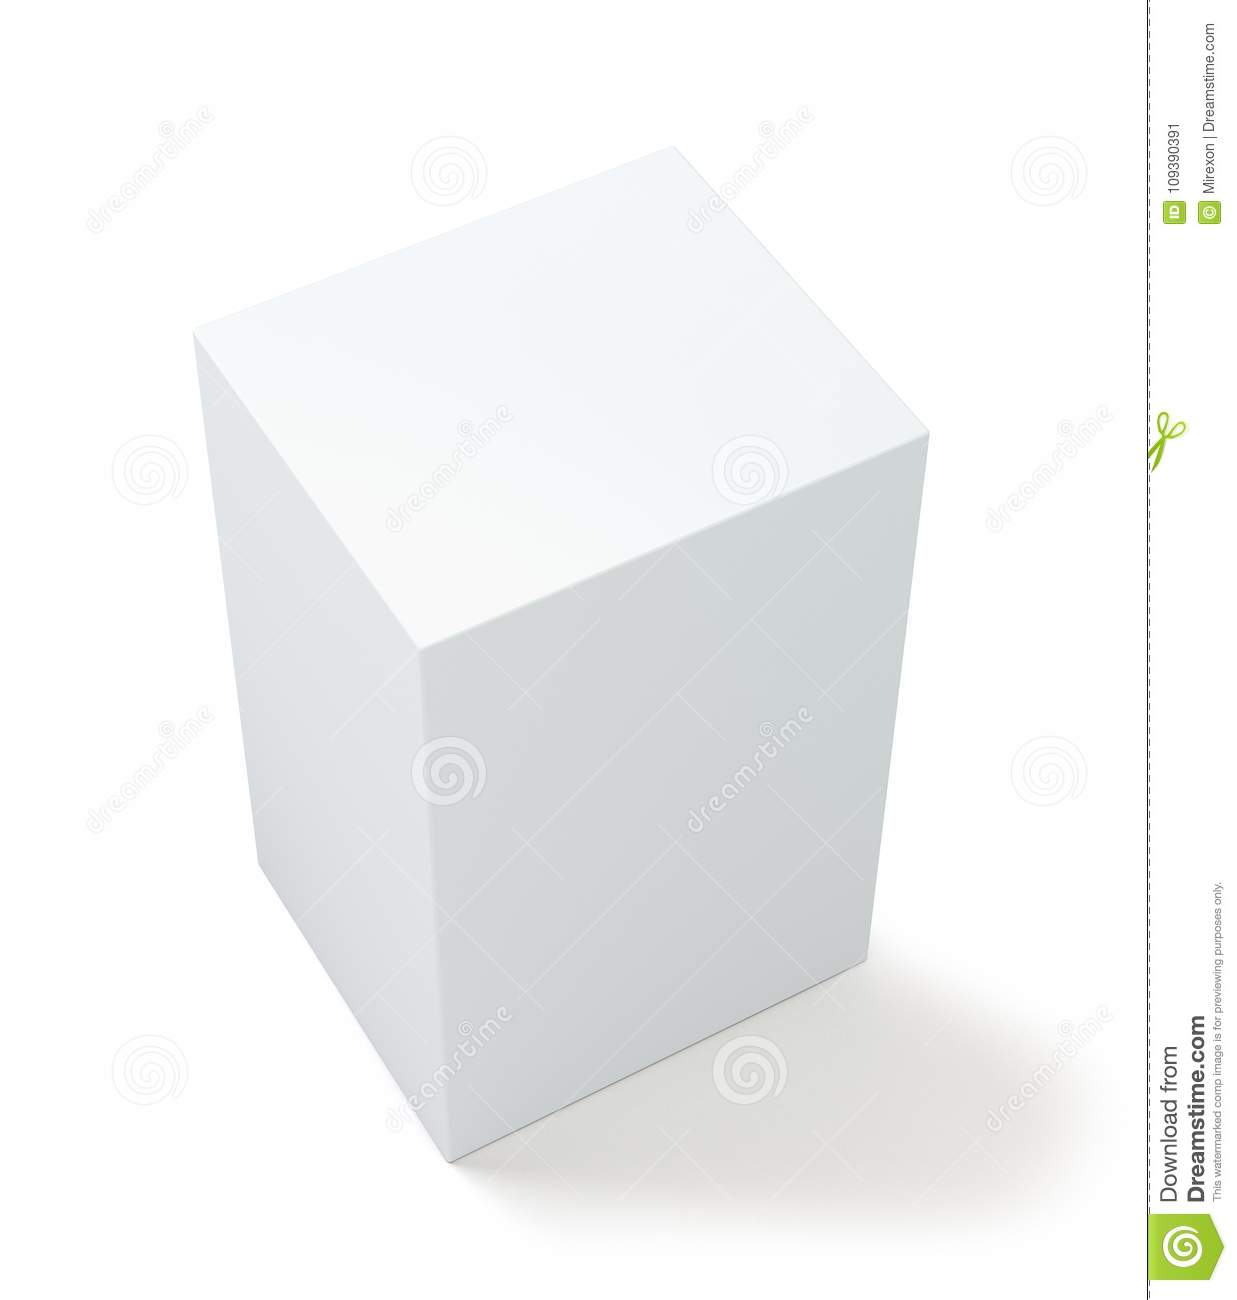 1c63b901f9 White package blank box from top front side angle. 3D illustration.  Isolated on white